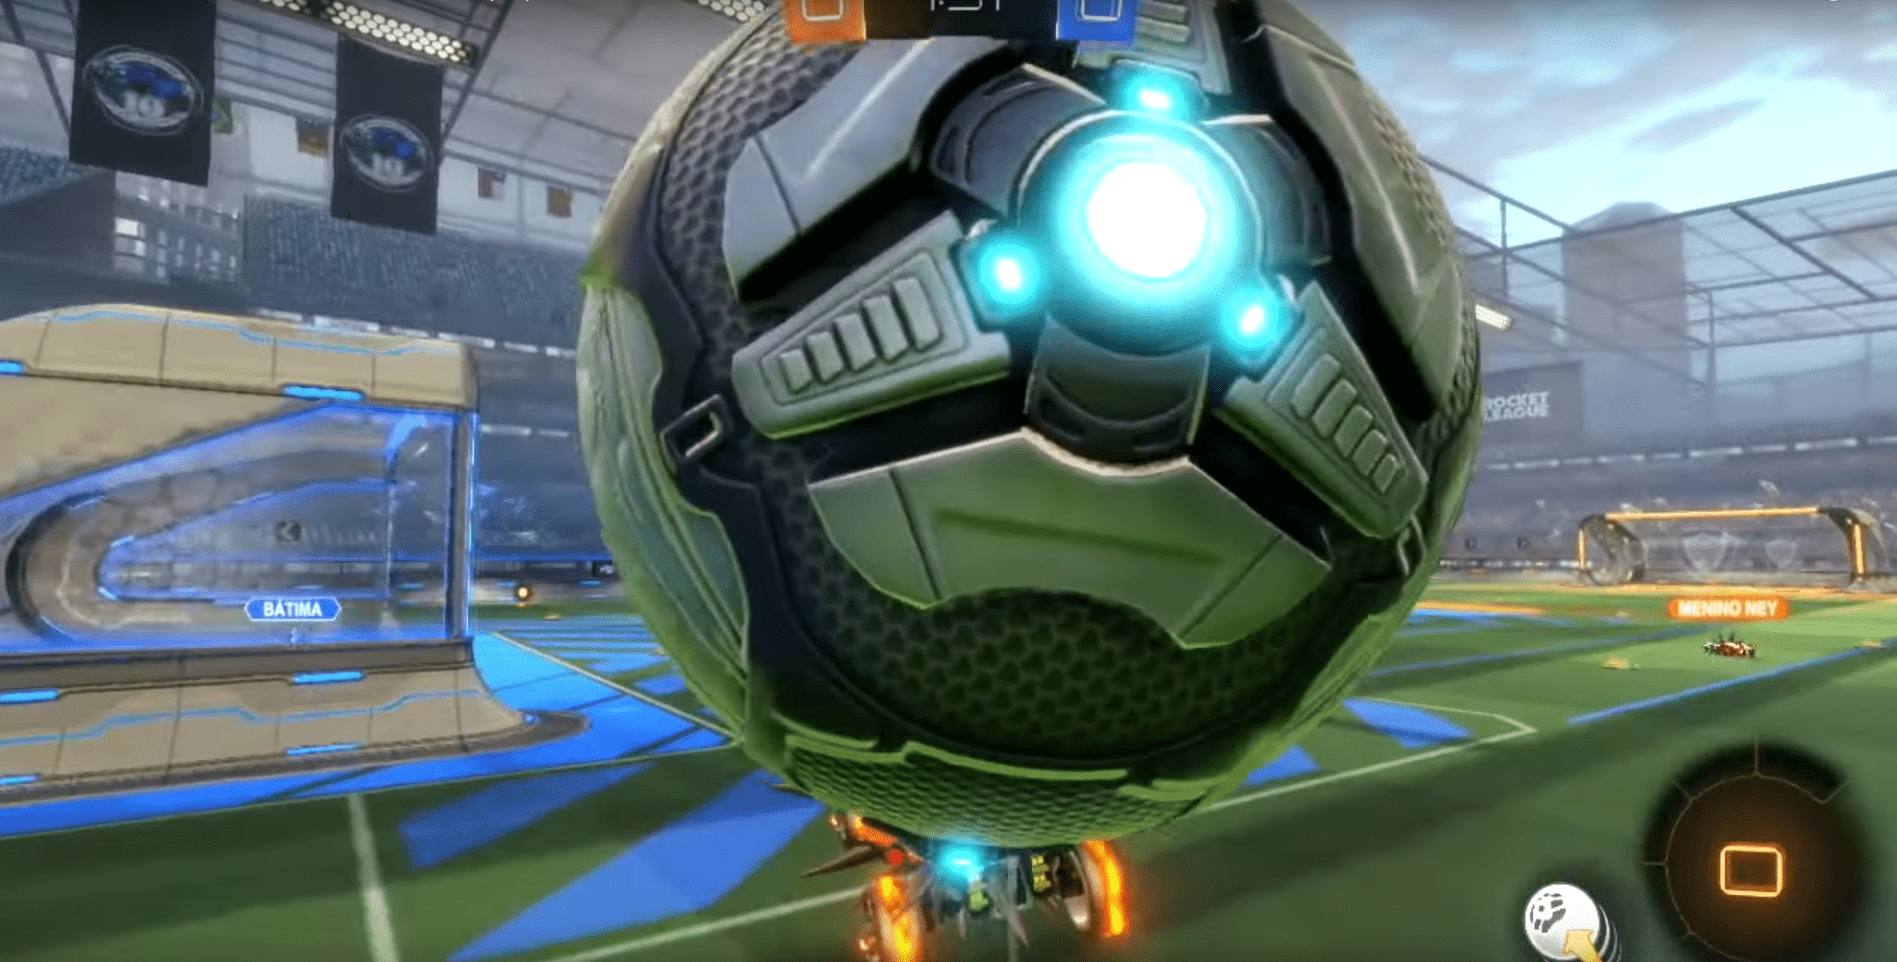 Spike Rush Is Returning To Rocket League Once Again As A Limited-Time Mode